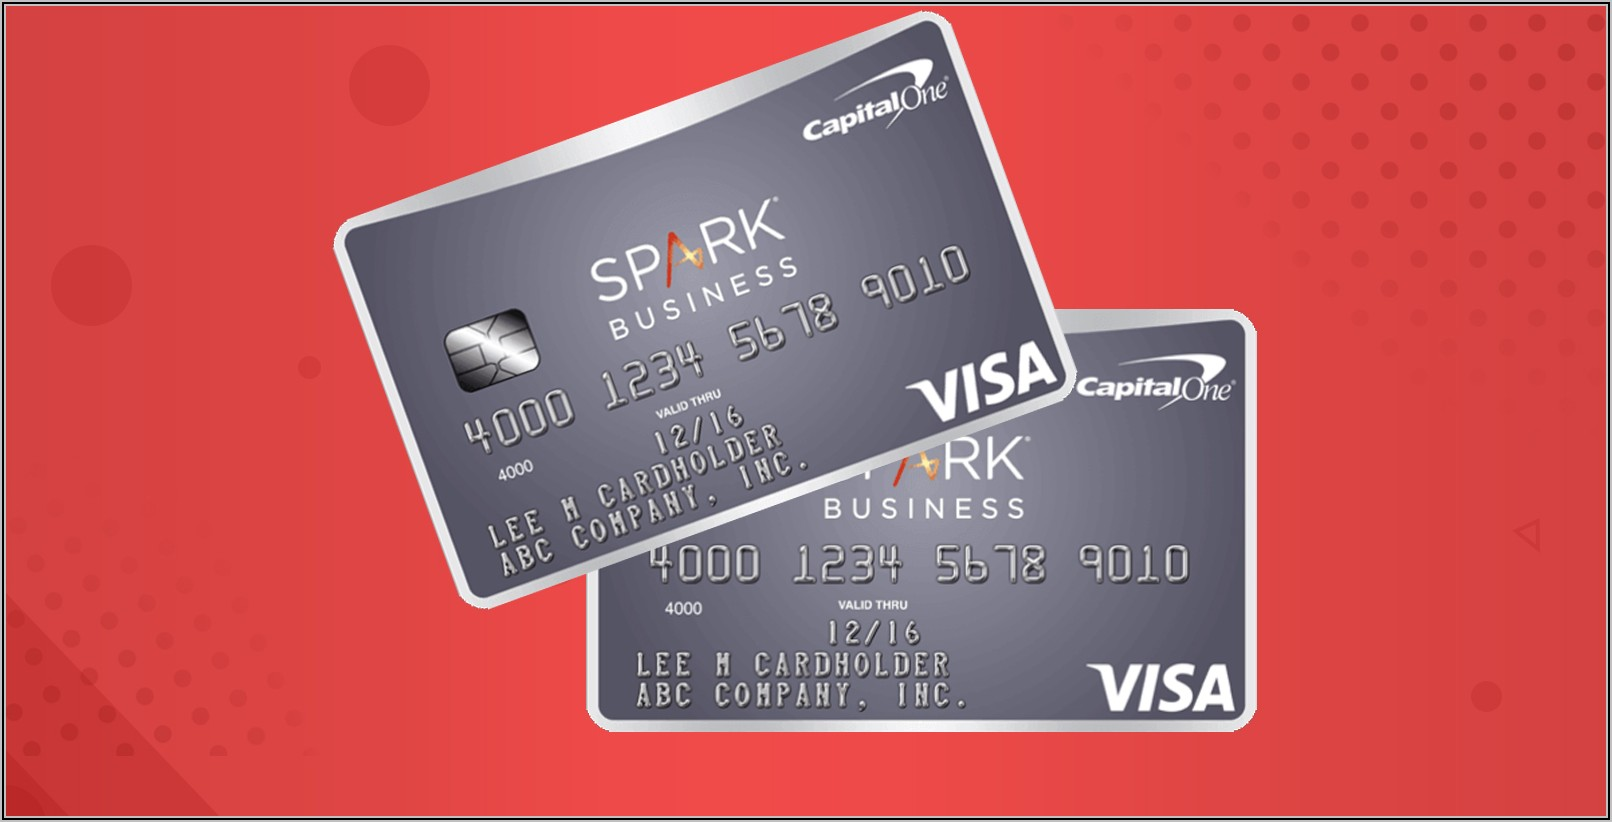 Capital One Spark Business Credit Card Customer Service Phone Number